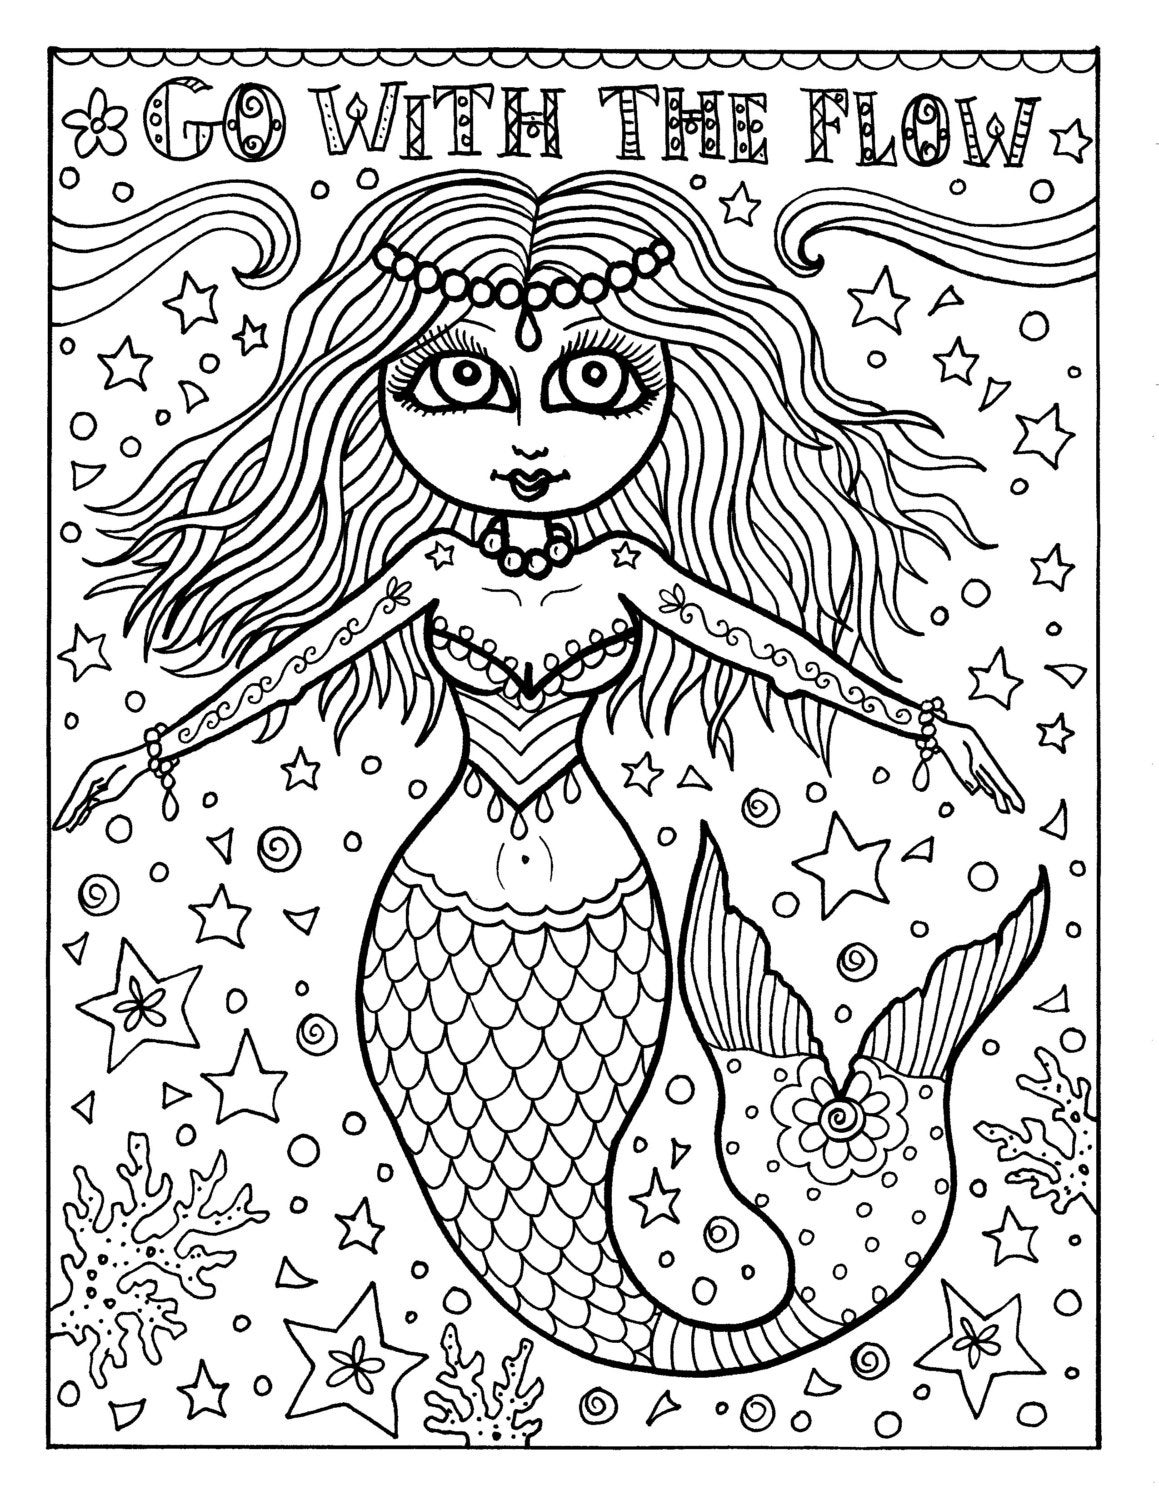 Instant Download Coloring Page Mermaid Adult Coloring Page